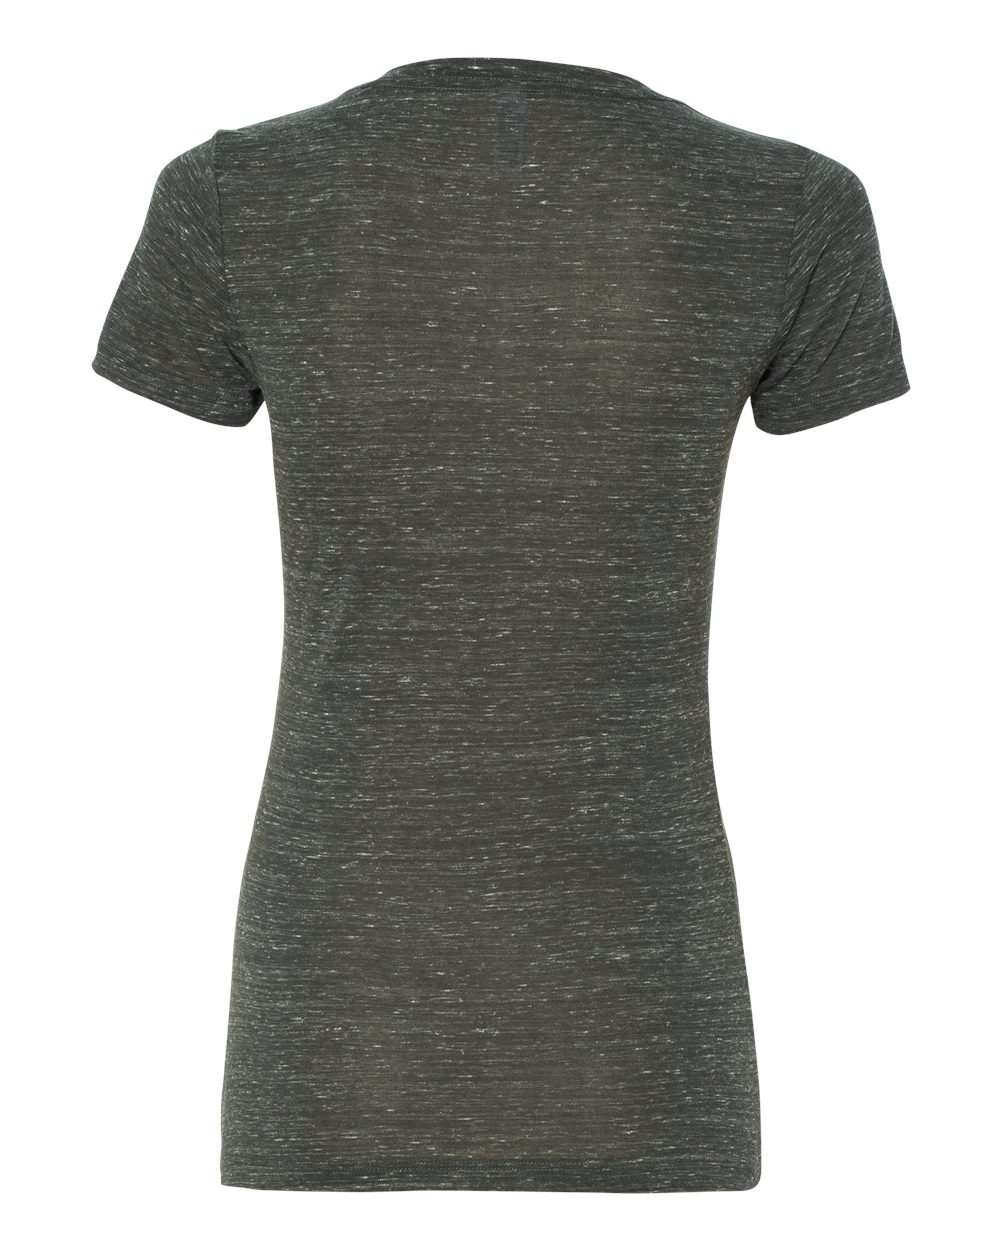 Bella-Canvas-Women-039-s-Jersey-Short-Sleeve-Deep-V-Neck-T-Shirt-B6035-S-2XL thumbnail 52